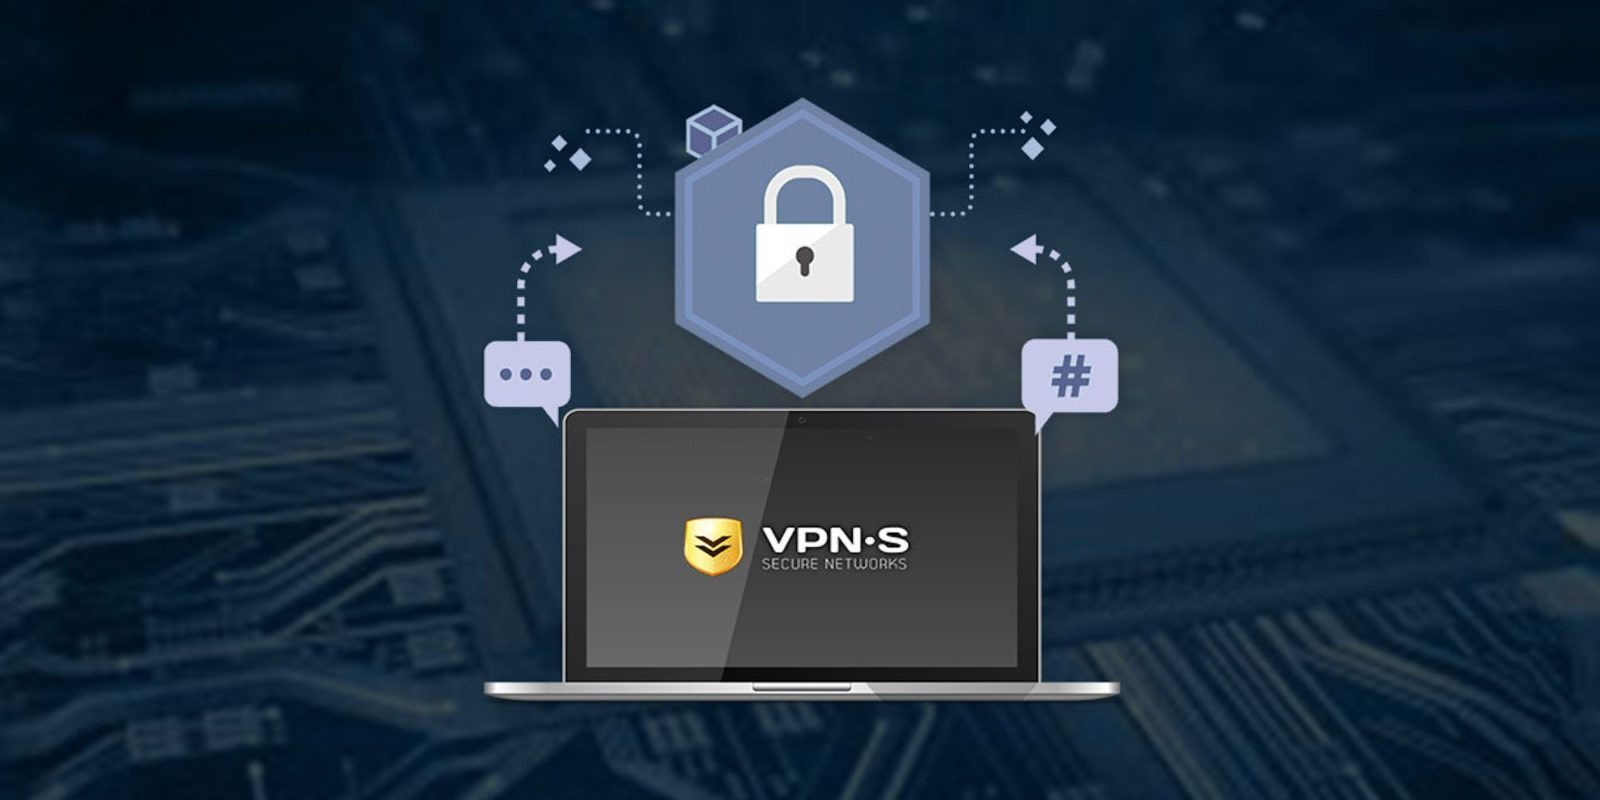 VPNSecure Lifetime Subscription Helps Safeguard Your Online Privacy Against Hackers for $45